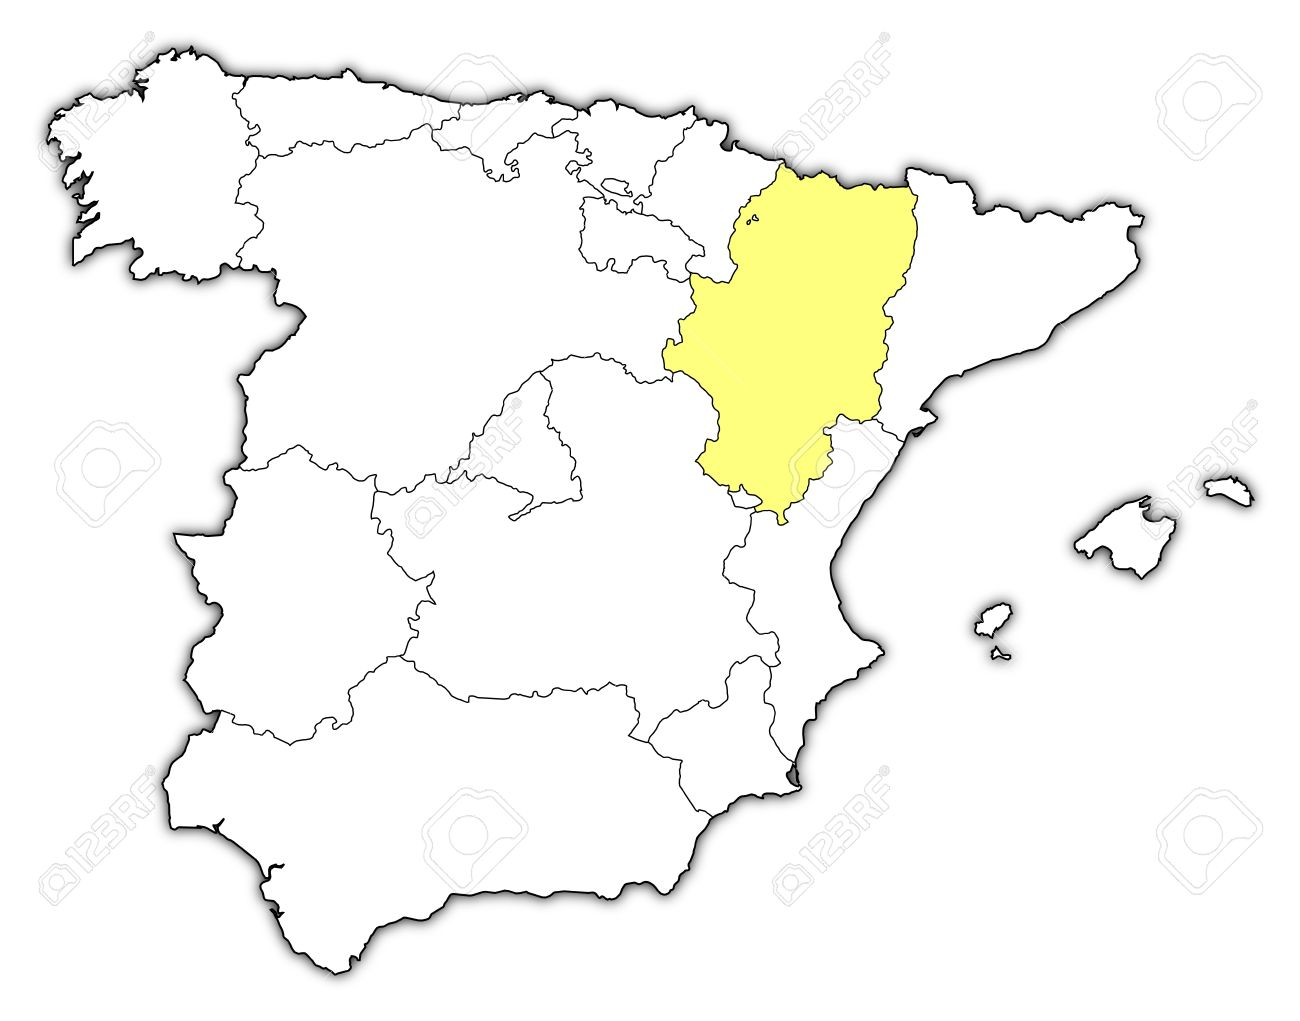 Political Map Of Spain With The Several Regions Where Aragon